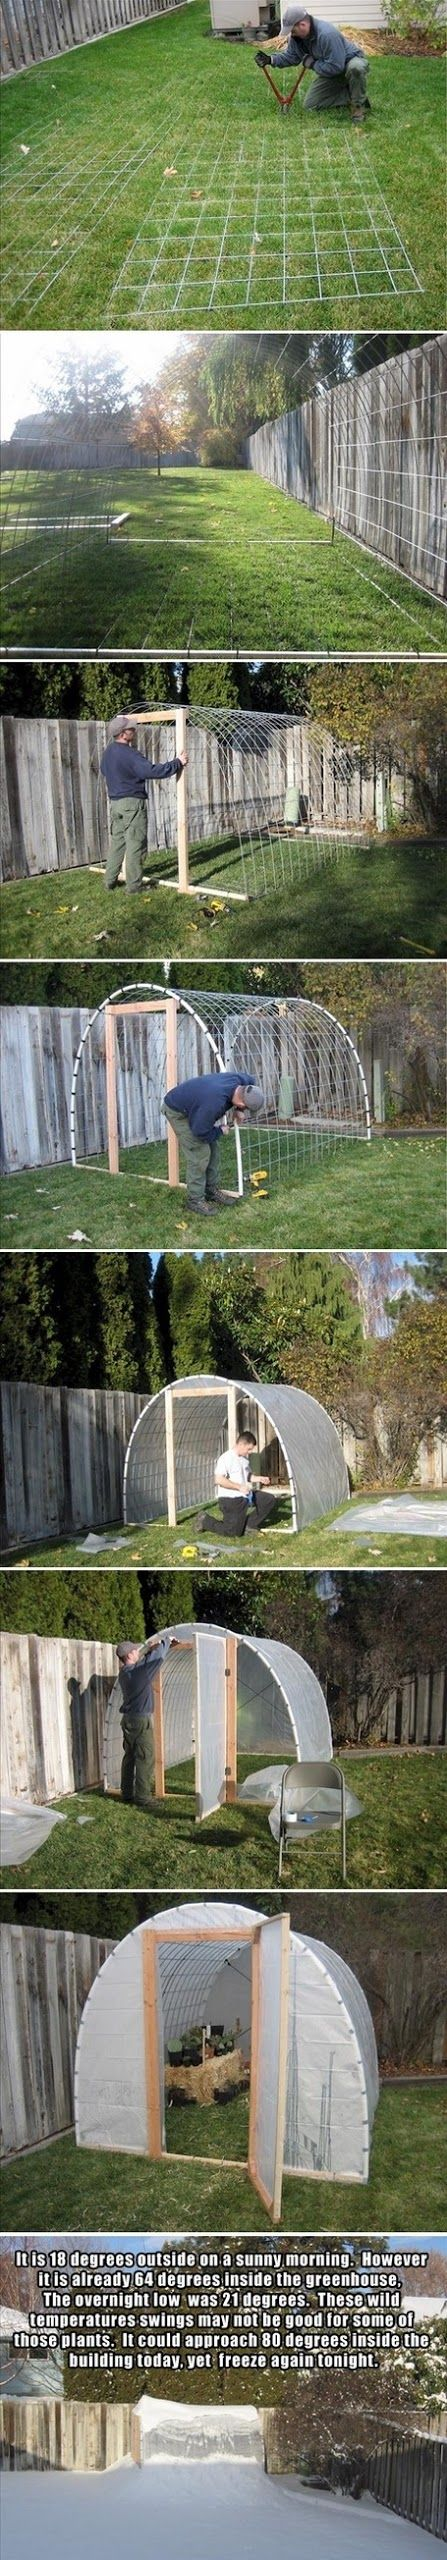 Make Your Own Greenhouse, I have done this with really good luck. I used an RV door instead of making one and also would use a heat lamp or two for really cold nights. I kept citrus trees in it and it was so nice to go in and set and smell the blossoms and to pick fresh kumquats and oranges and eat.